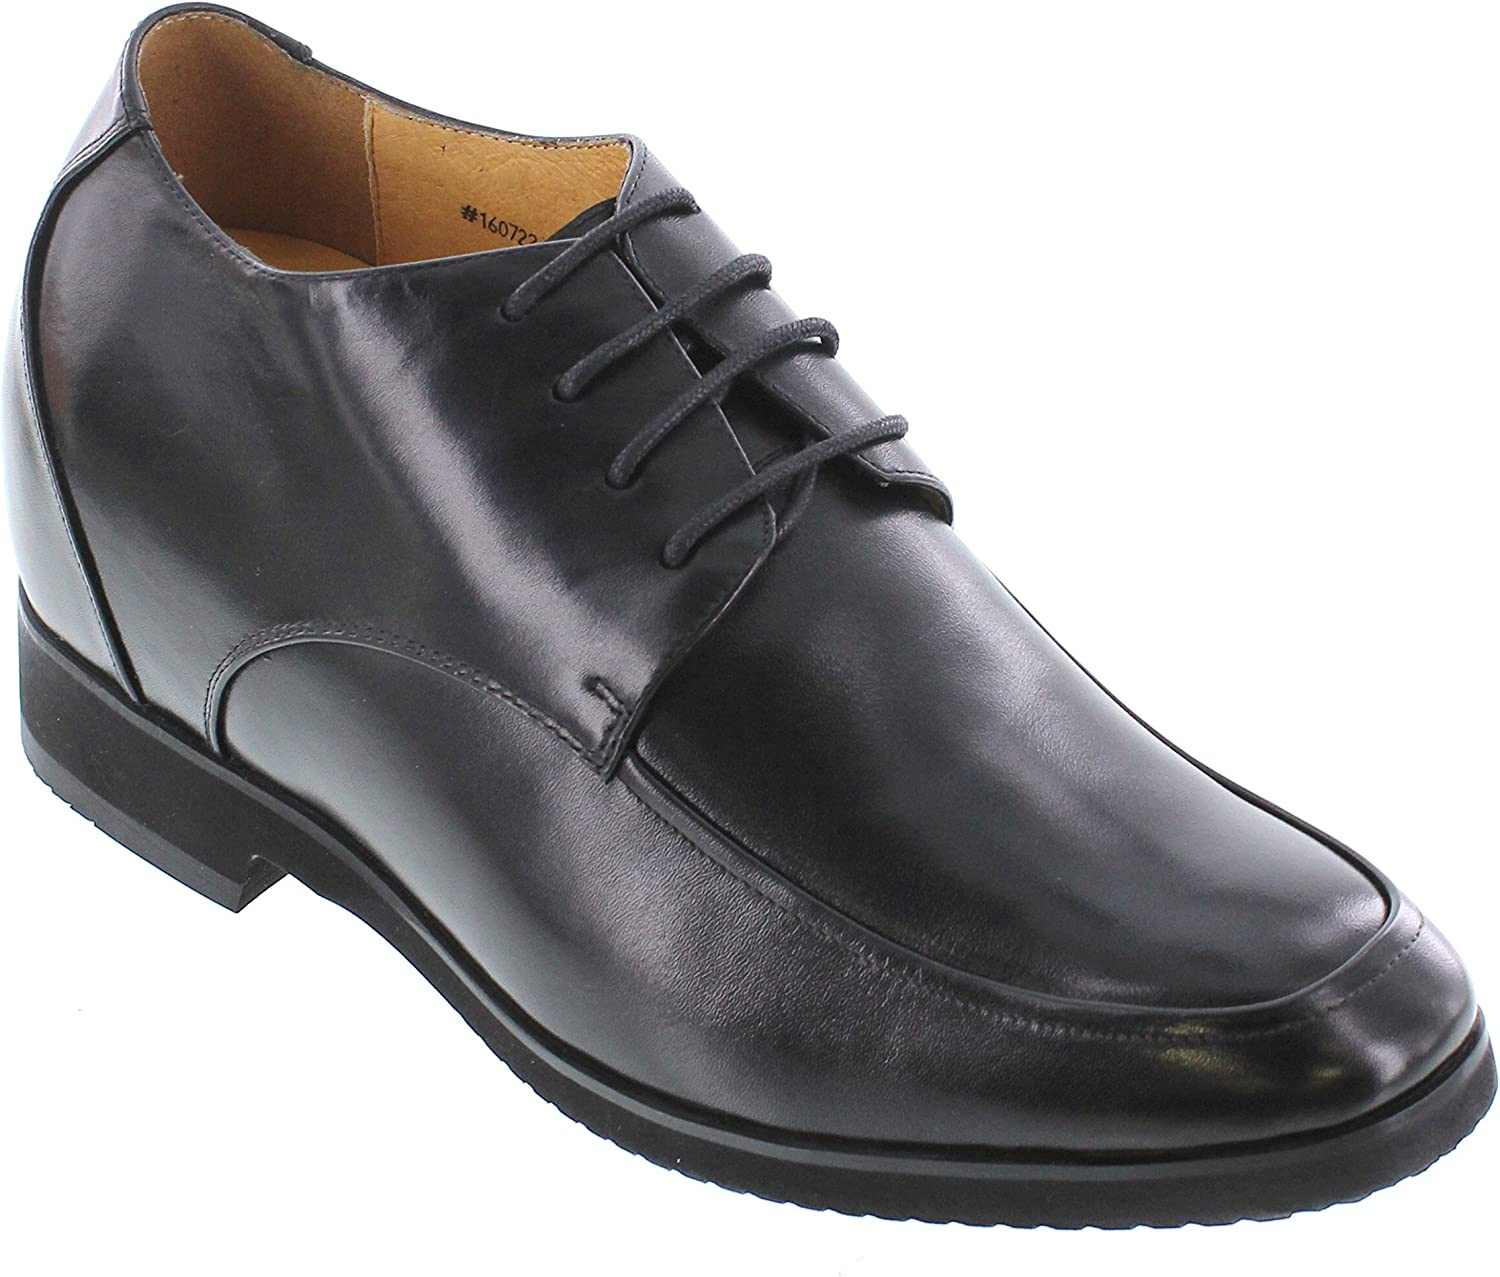 Toto - X7102-4 Inches Taller - Height Increasing Elevator shoes (Black Extra Heightening)